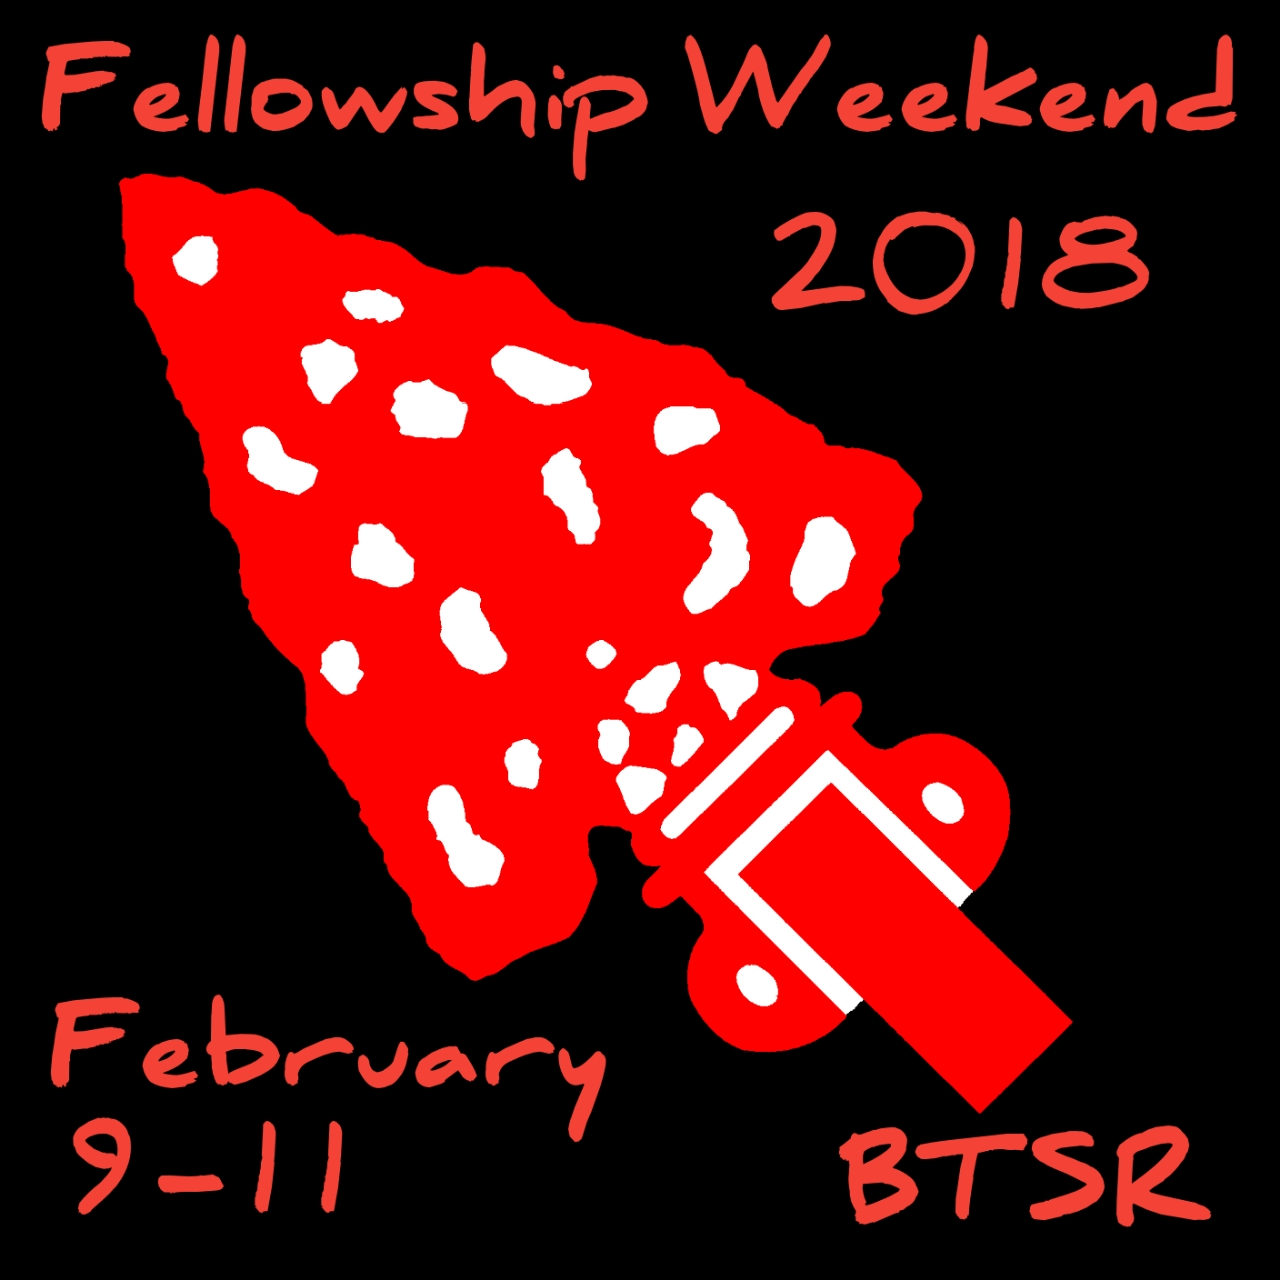 OA Fellowship Weekend – REMINDER